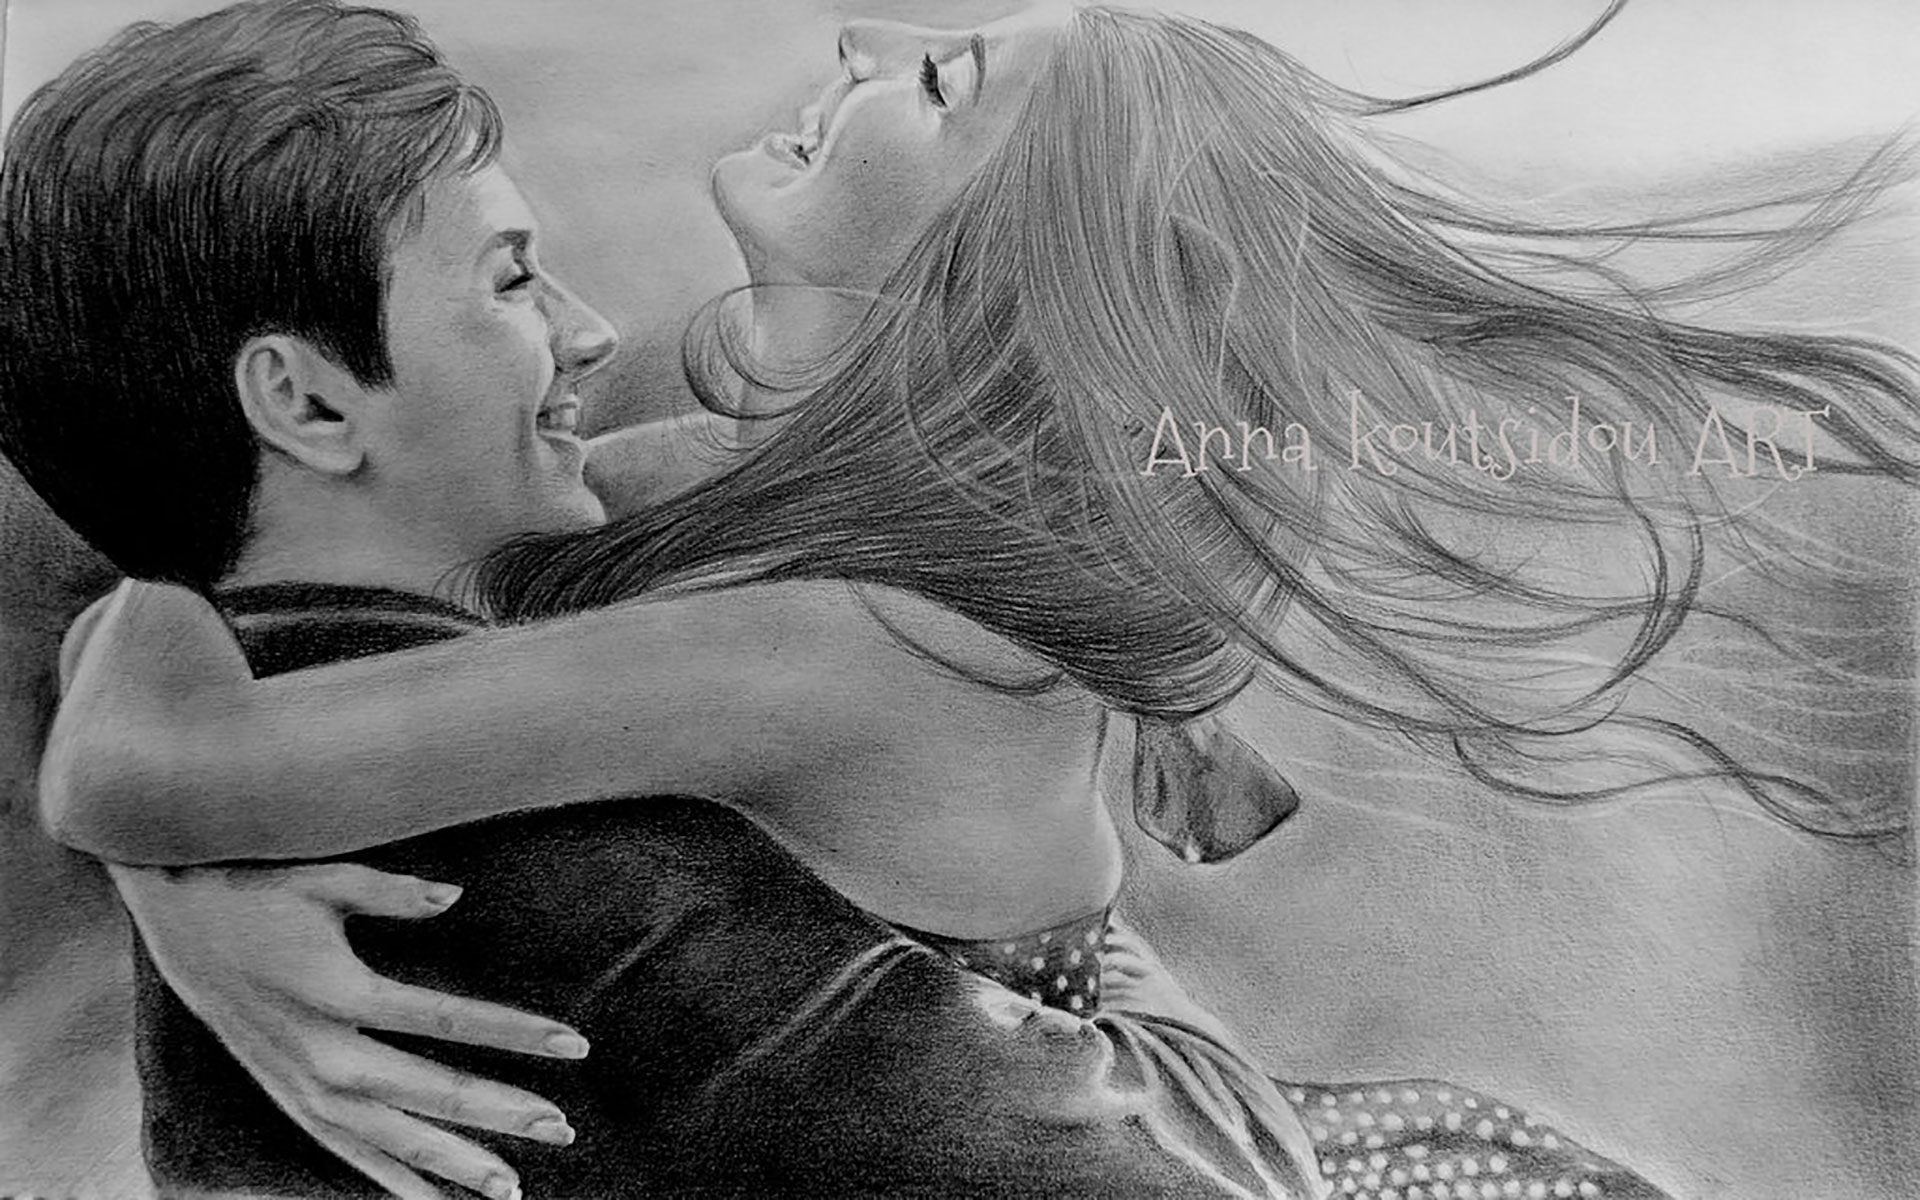 Cute love drawings pencil art |HD romantic sketch wallpaper